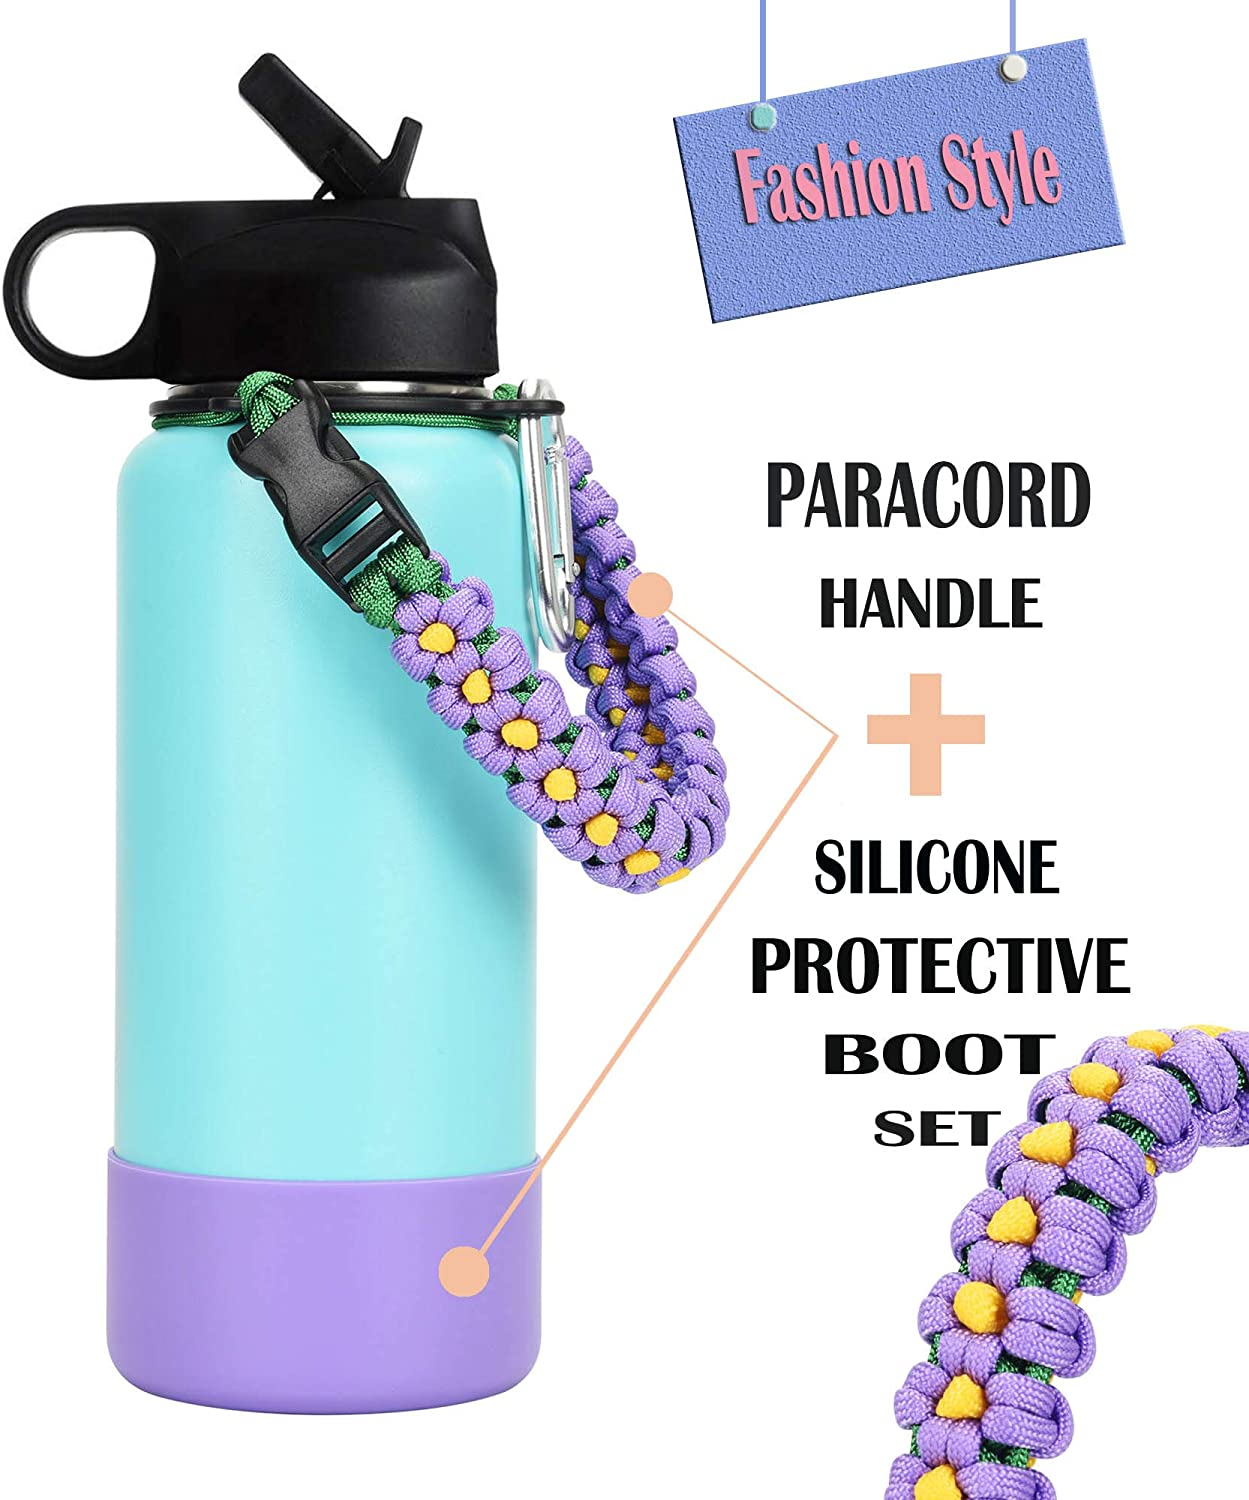 LX-SUNCX Paracord Handle for Hydro Flask water bottle,Fits Wide Mouth Bottles(12oz-40oz),Durable Carrier with Safety Ring and Carabiner,Plus a Nice Super Protective Silicone Sleeve